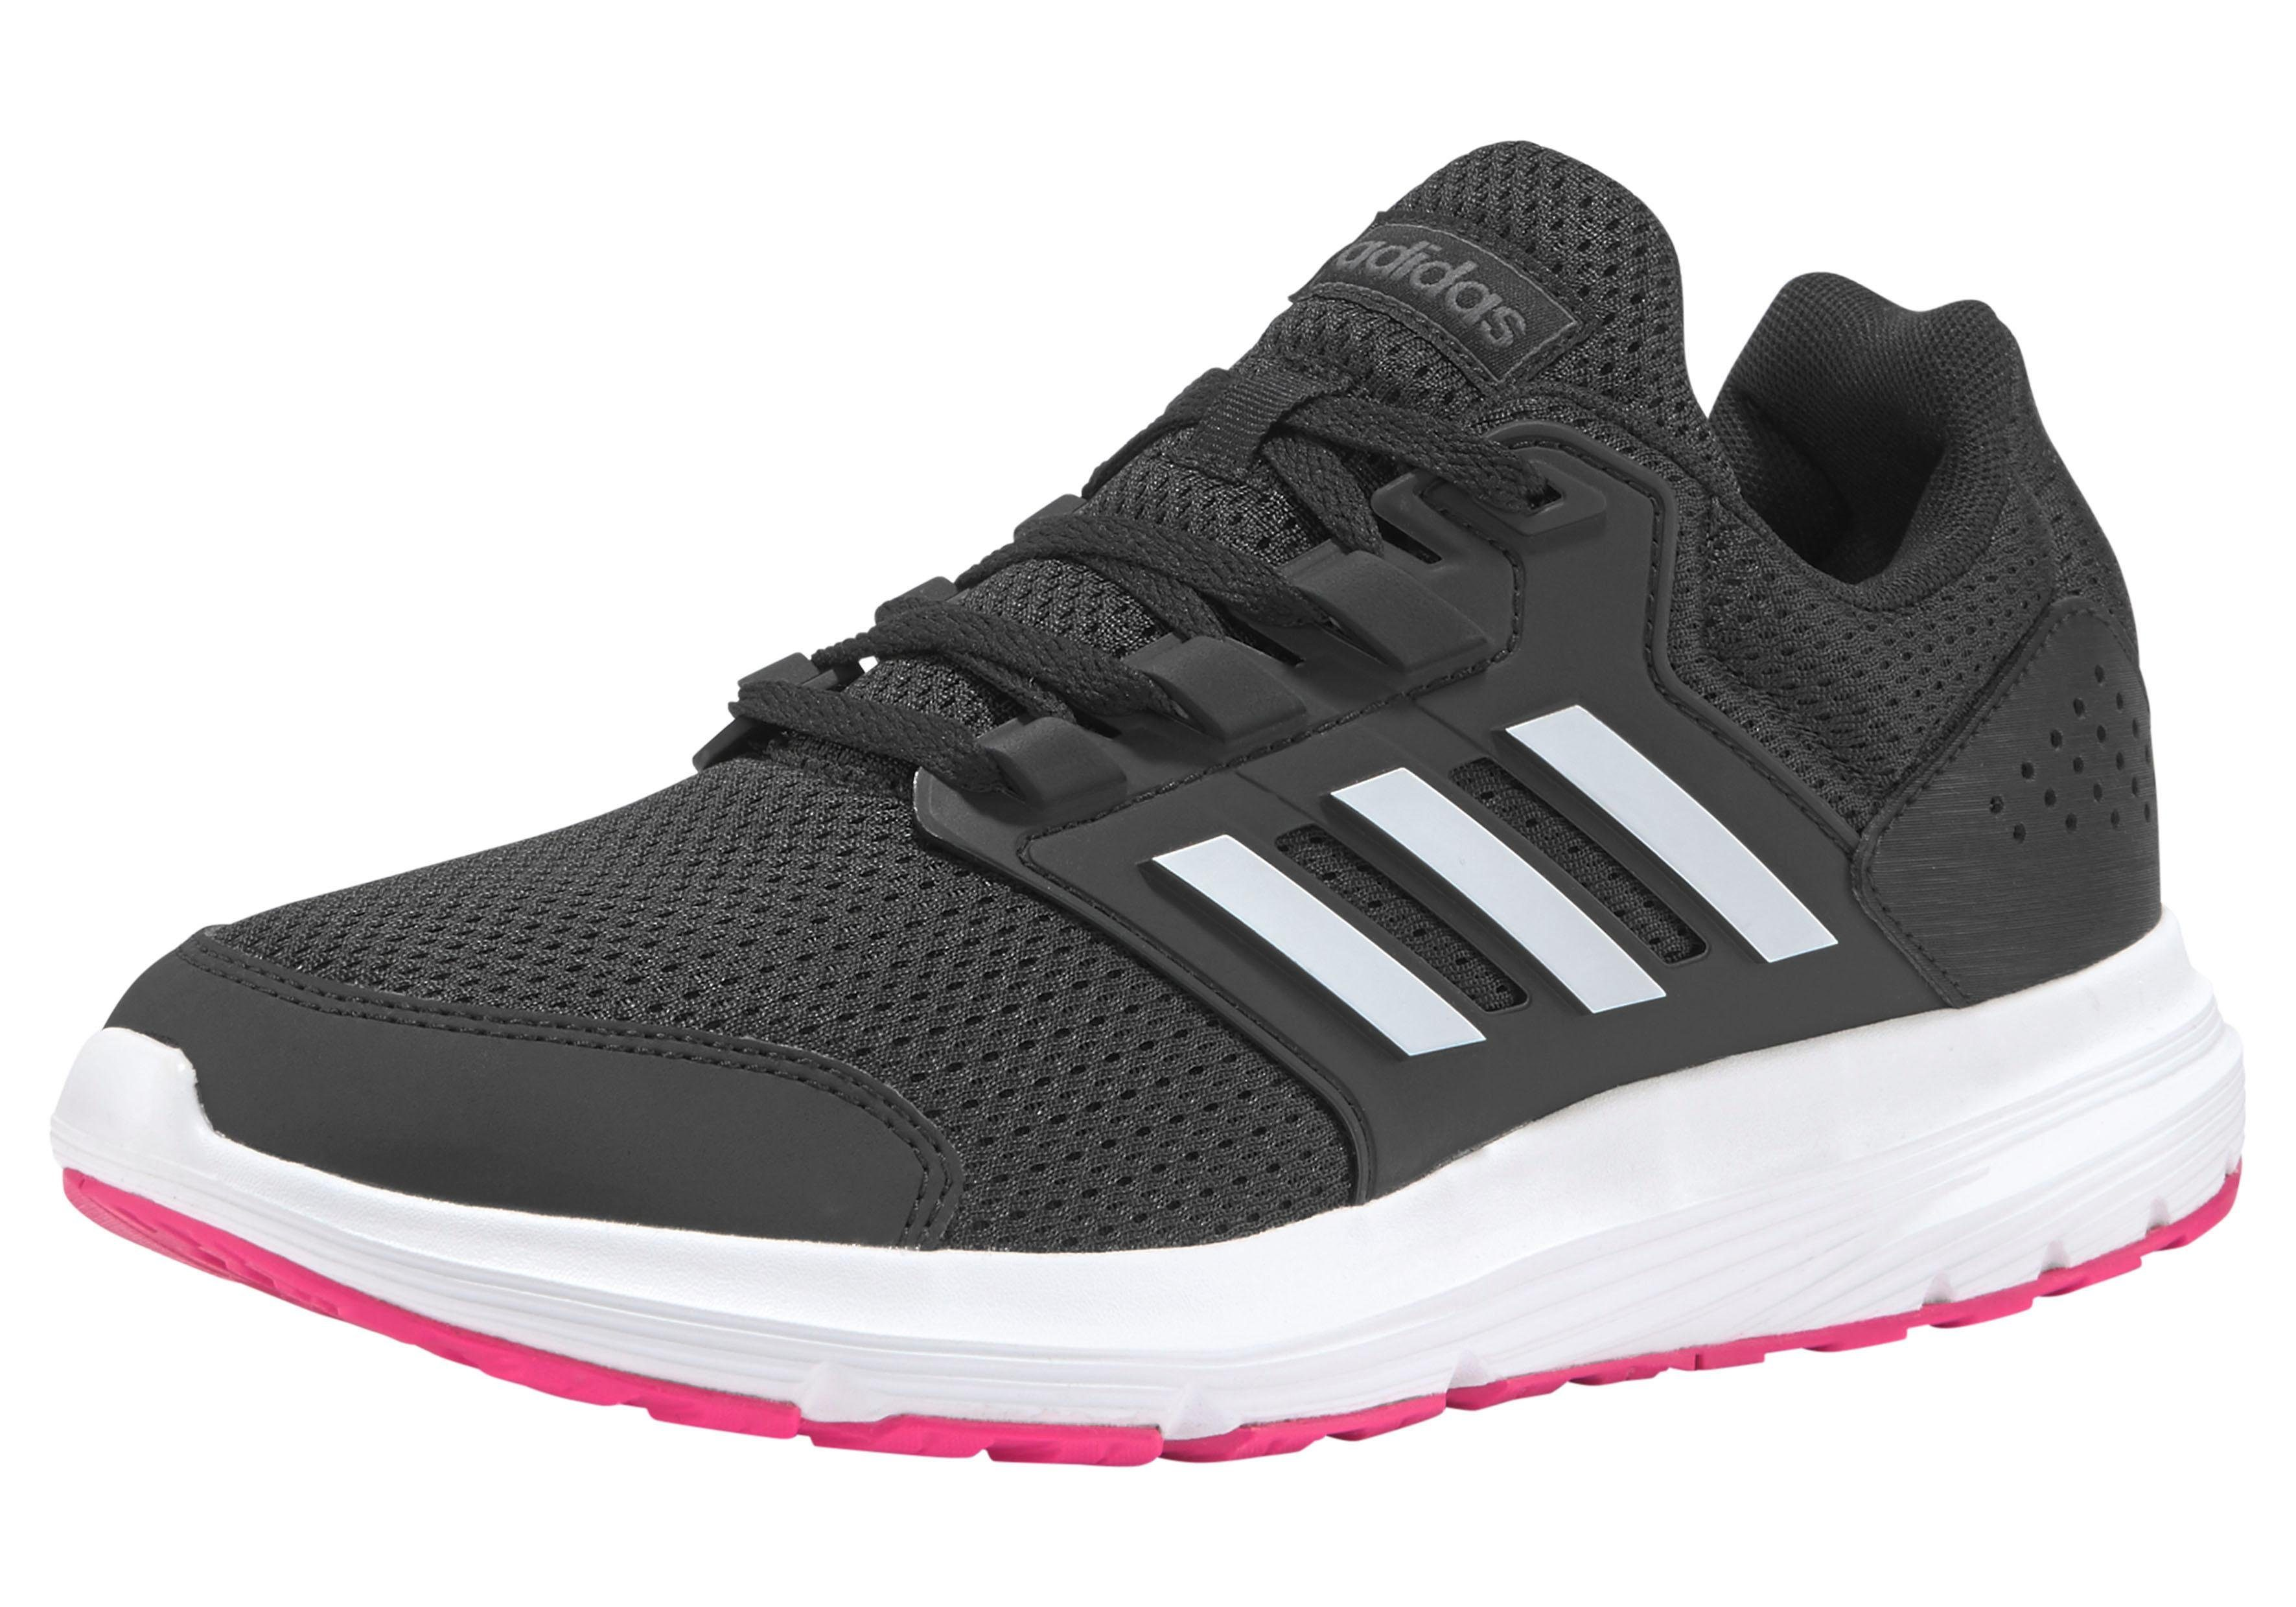 adidas boost rogue dames zwart roze dames sneakers